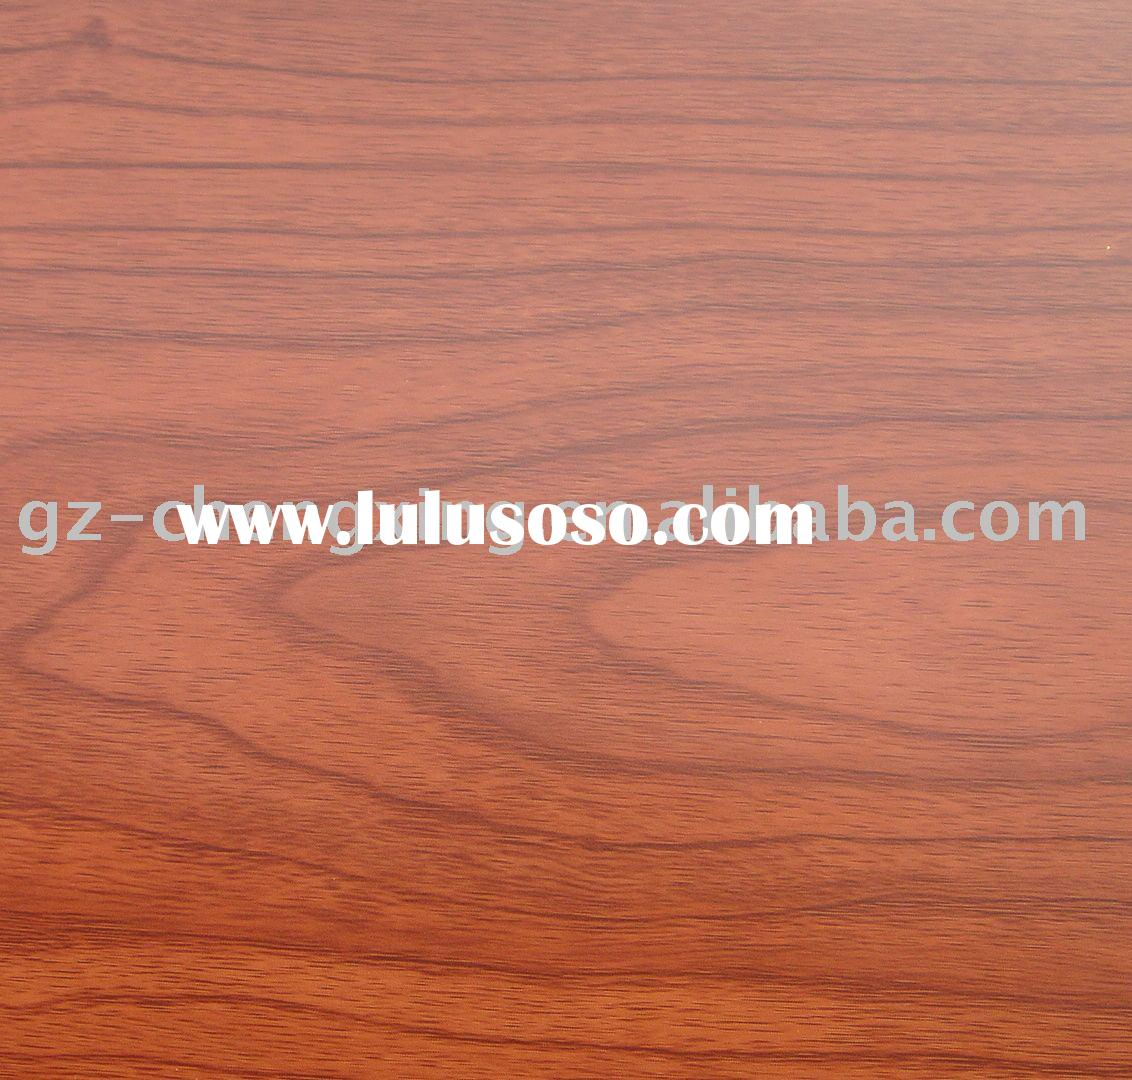 Wood grain self adhesive vinyl film